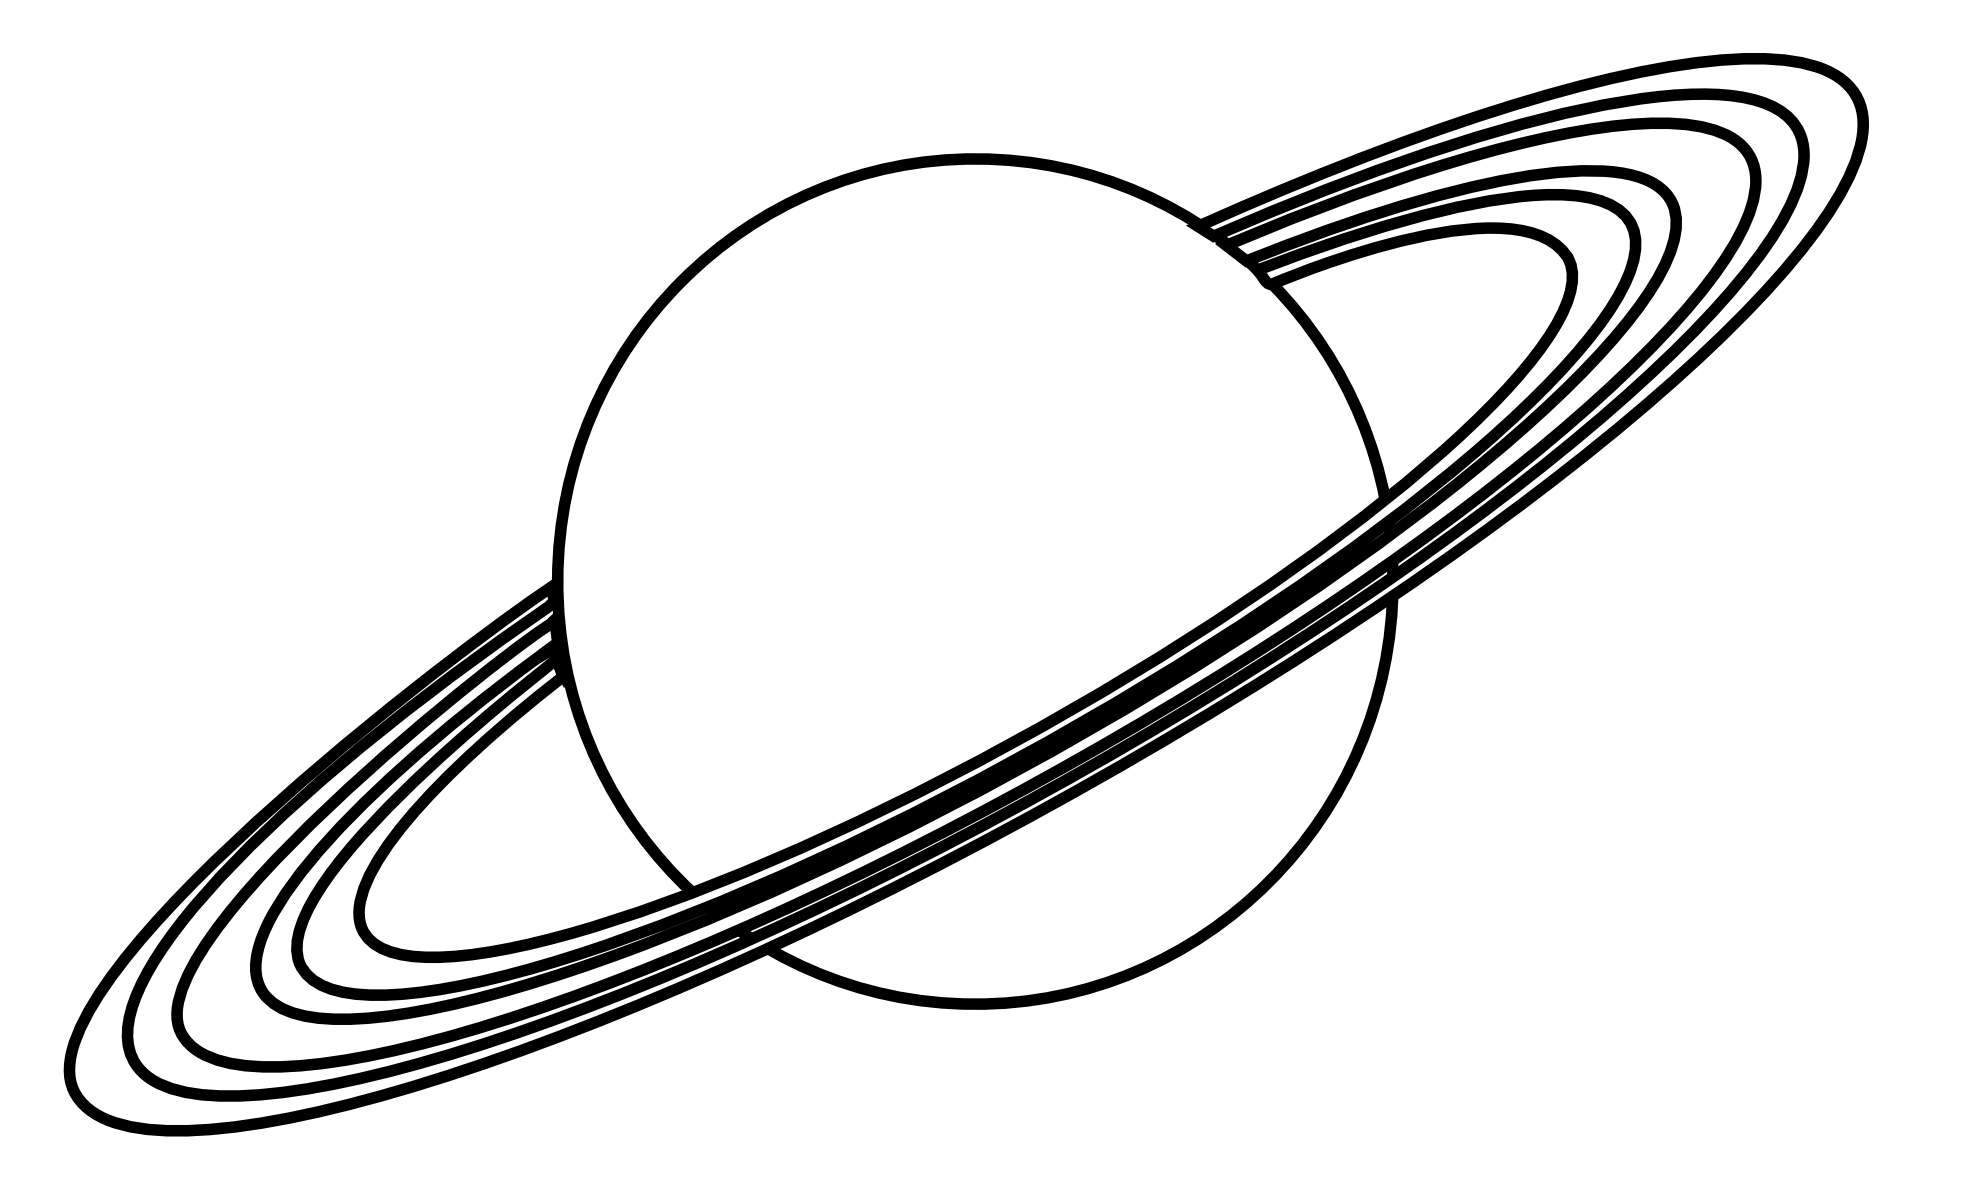 saturn coloring sheet step 7 how to draw saturn coloring sheet saturn